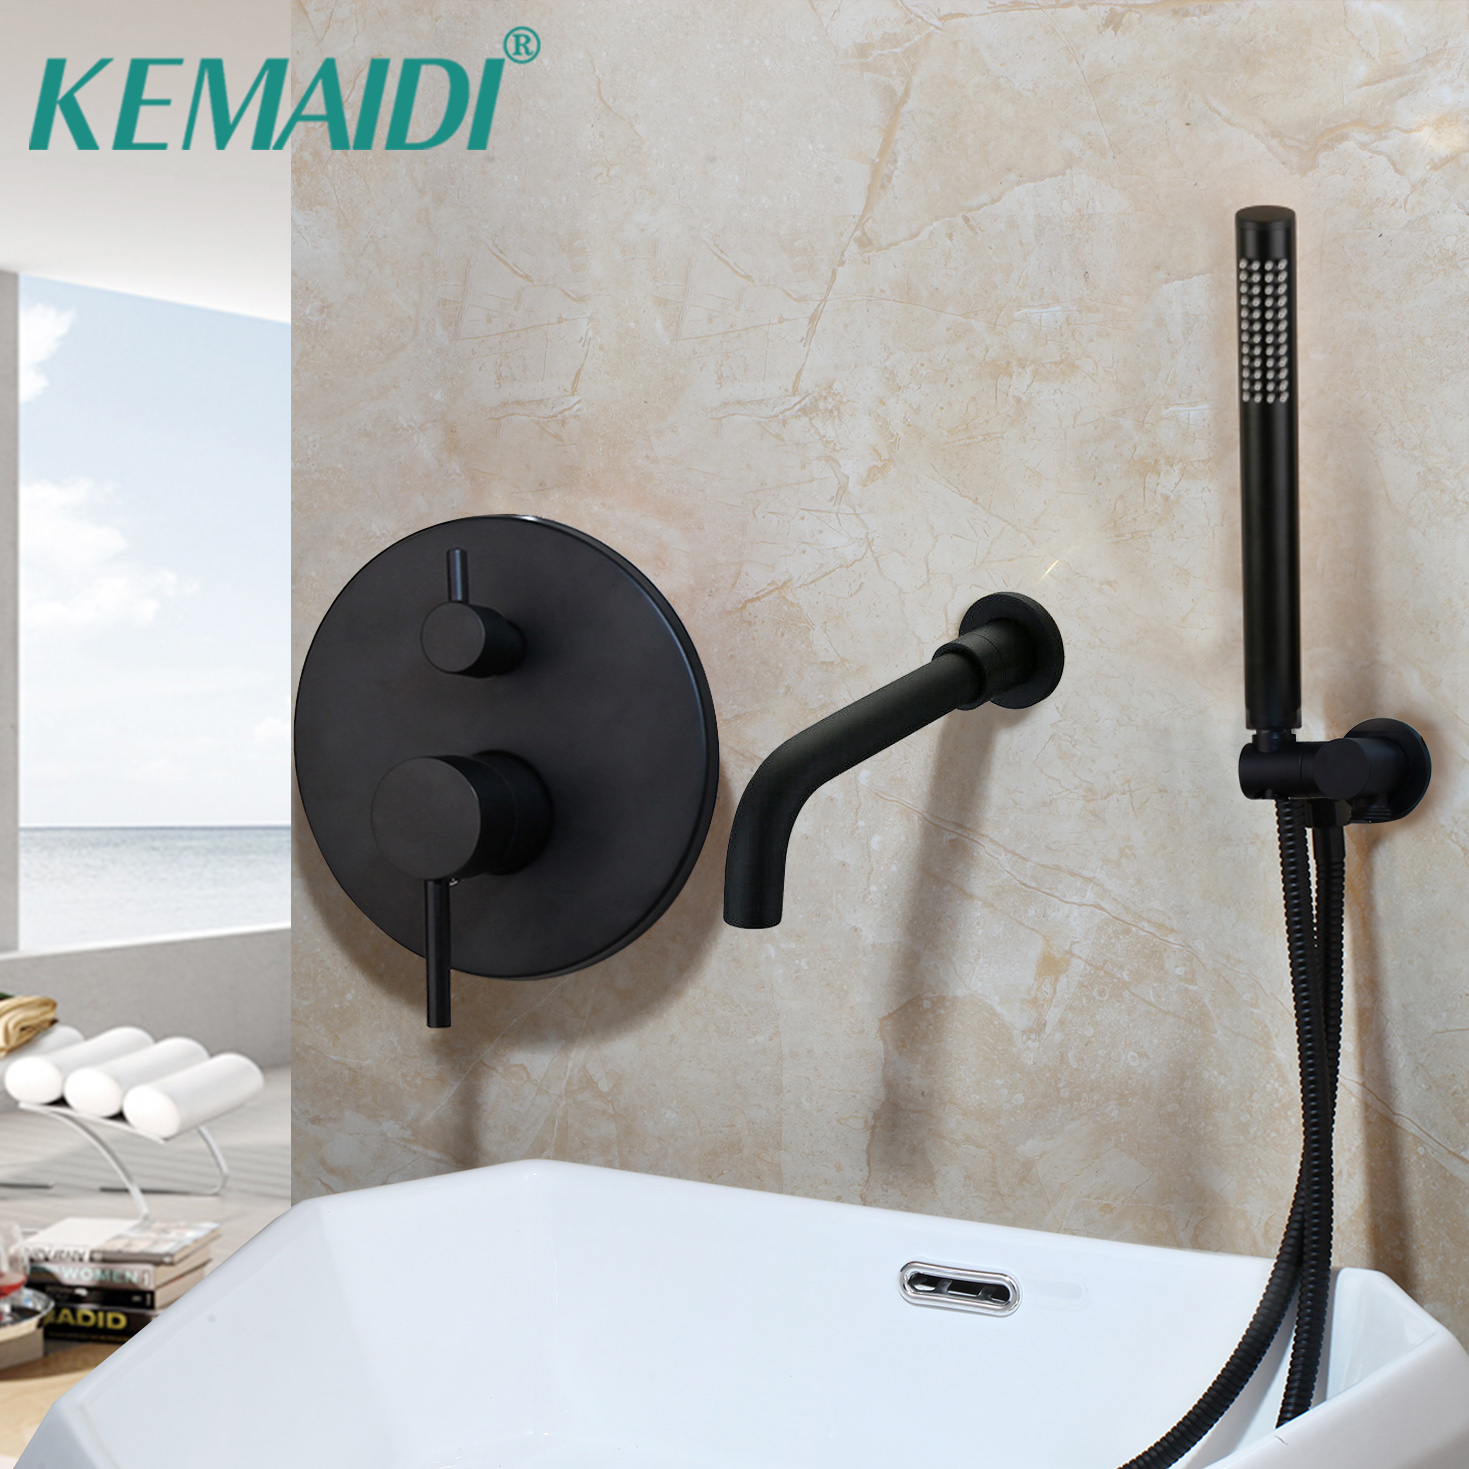 KEMAIDI  Matte Black Europe style Shower Faucet Set  Bathroom Faucets Set with Hand Shower Head Black Mixer for Cold and Hot